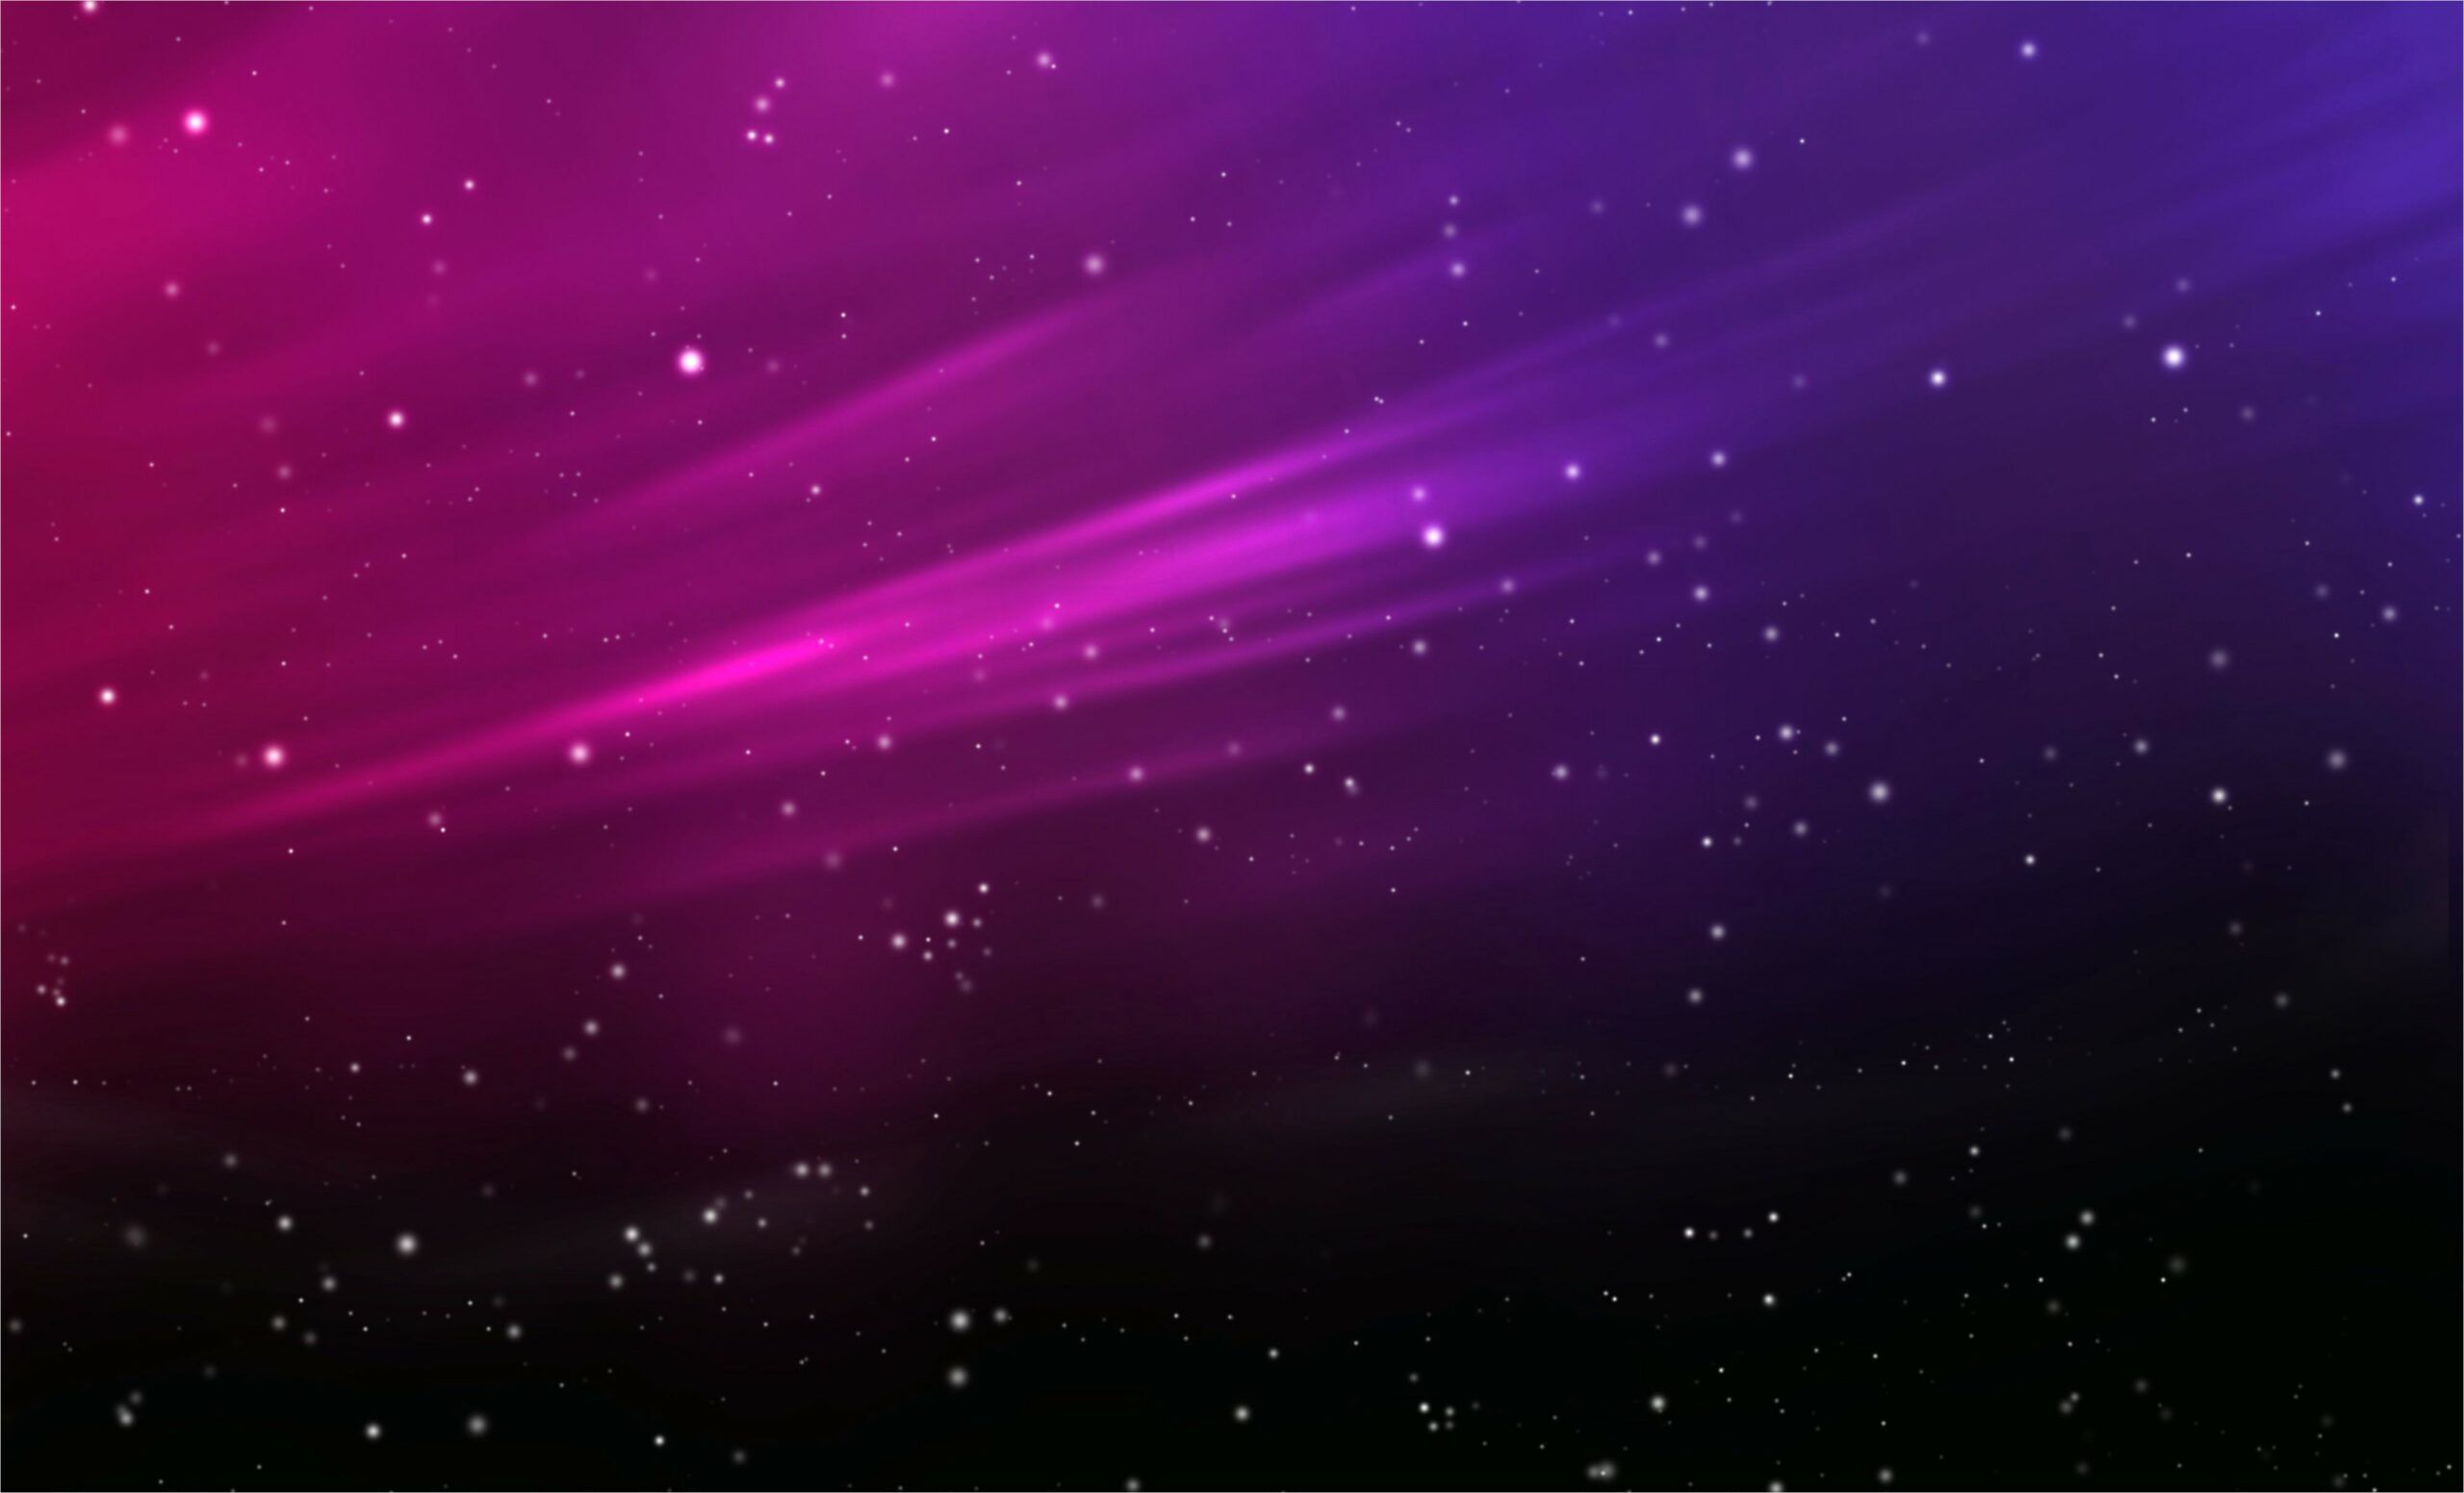 4k Black And Purple Hi Def Wallpaper In 2020 Dark Purple Wallpaper Purple Wallpaper Purple Wallpaper Hd